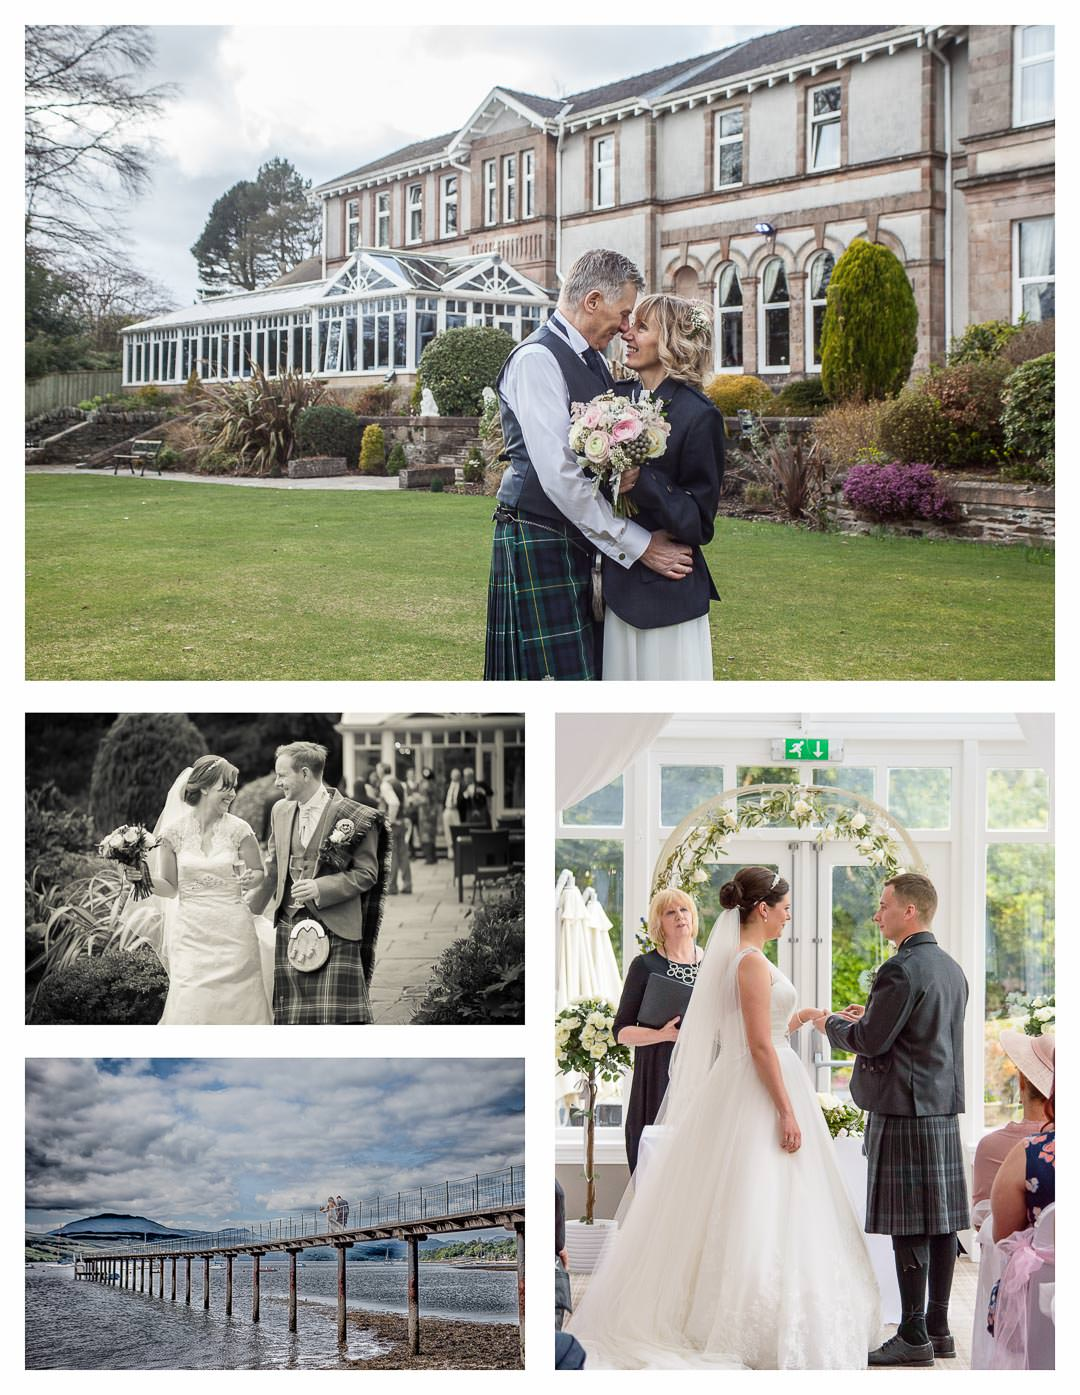 So There You Have It Fairytales Photographys List Of The Best Venues In Loch Lomond For Your Wedding Wherever Choose Itll Be Great A